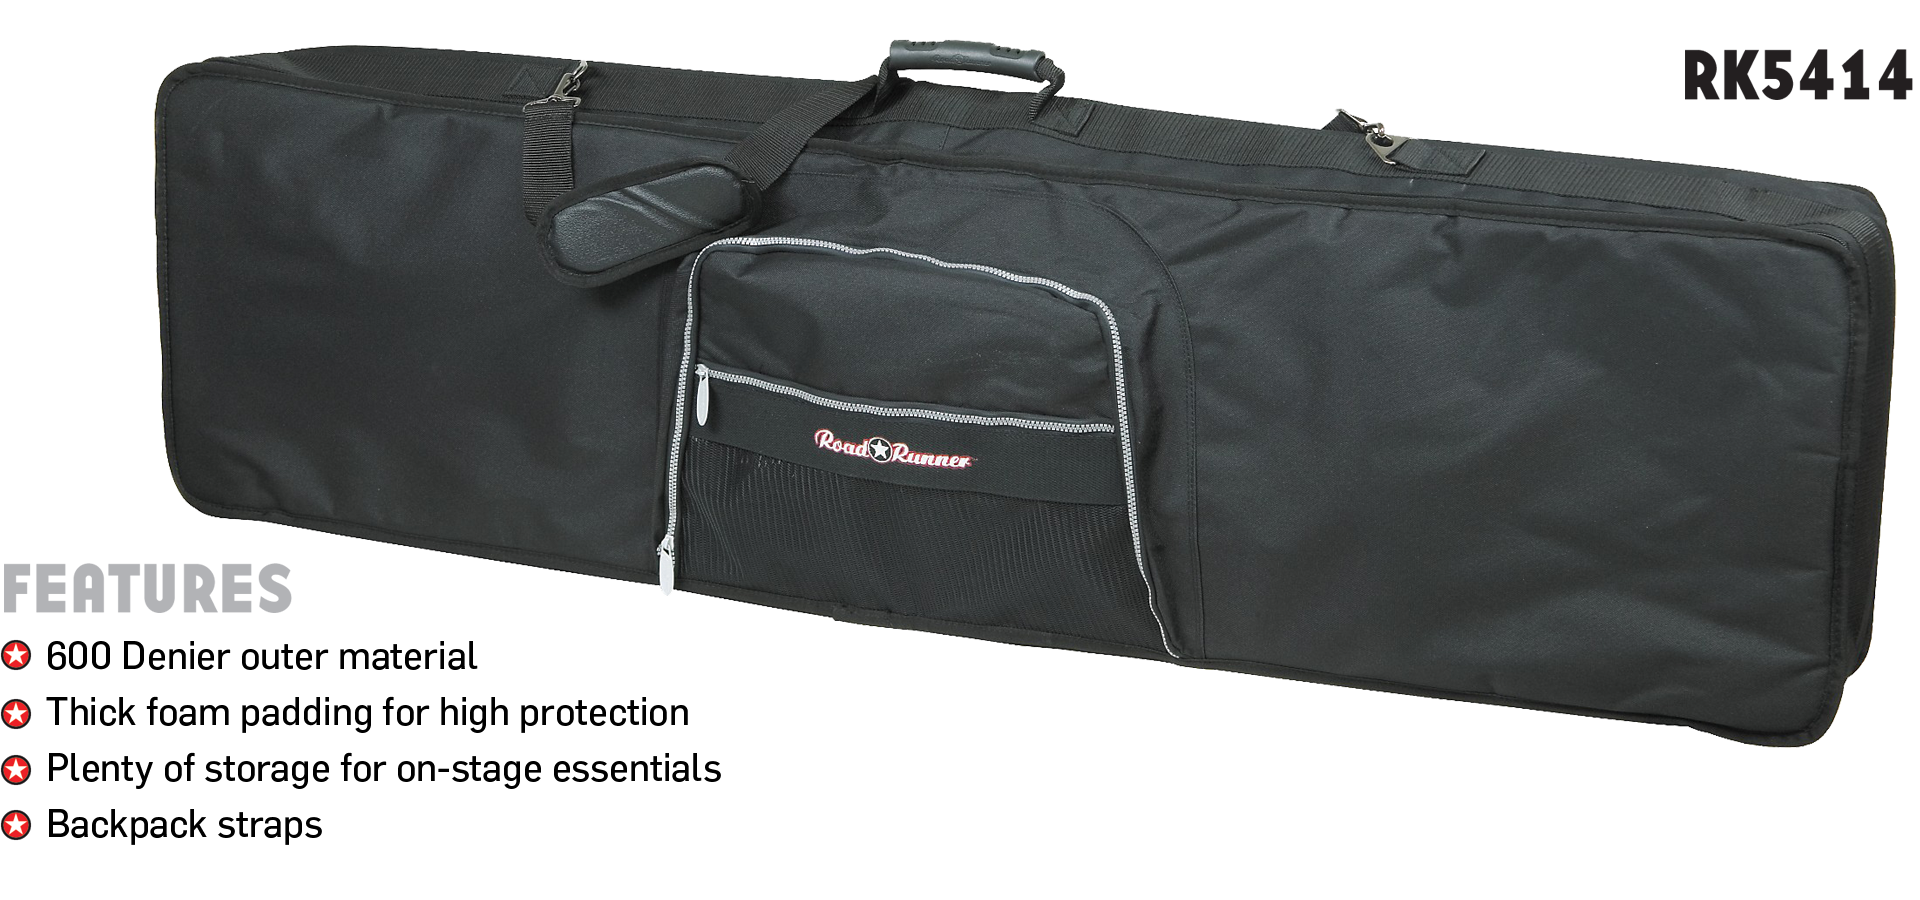 88-Key Keyboard Bag Road Runner RK5414